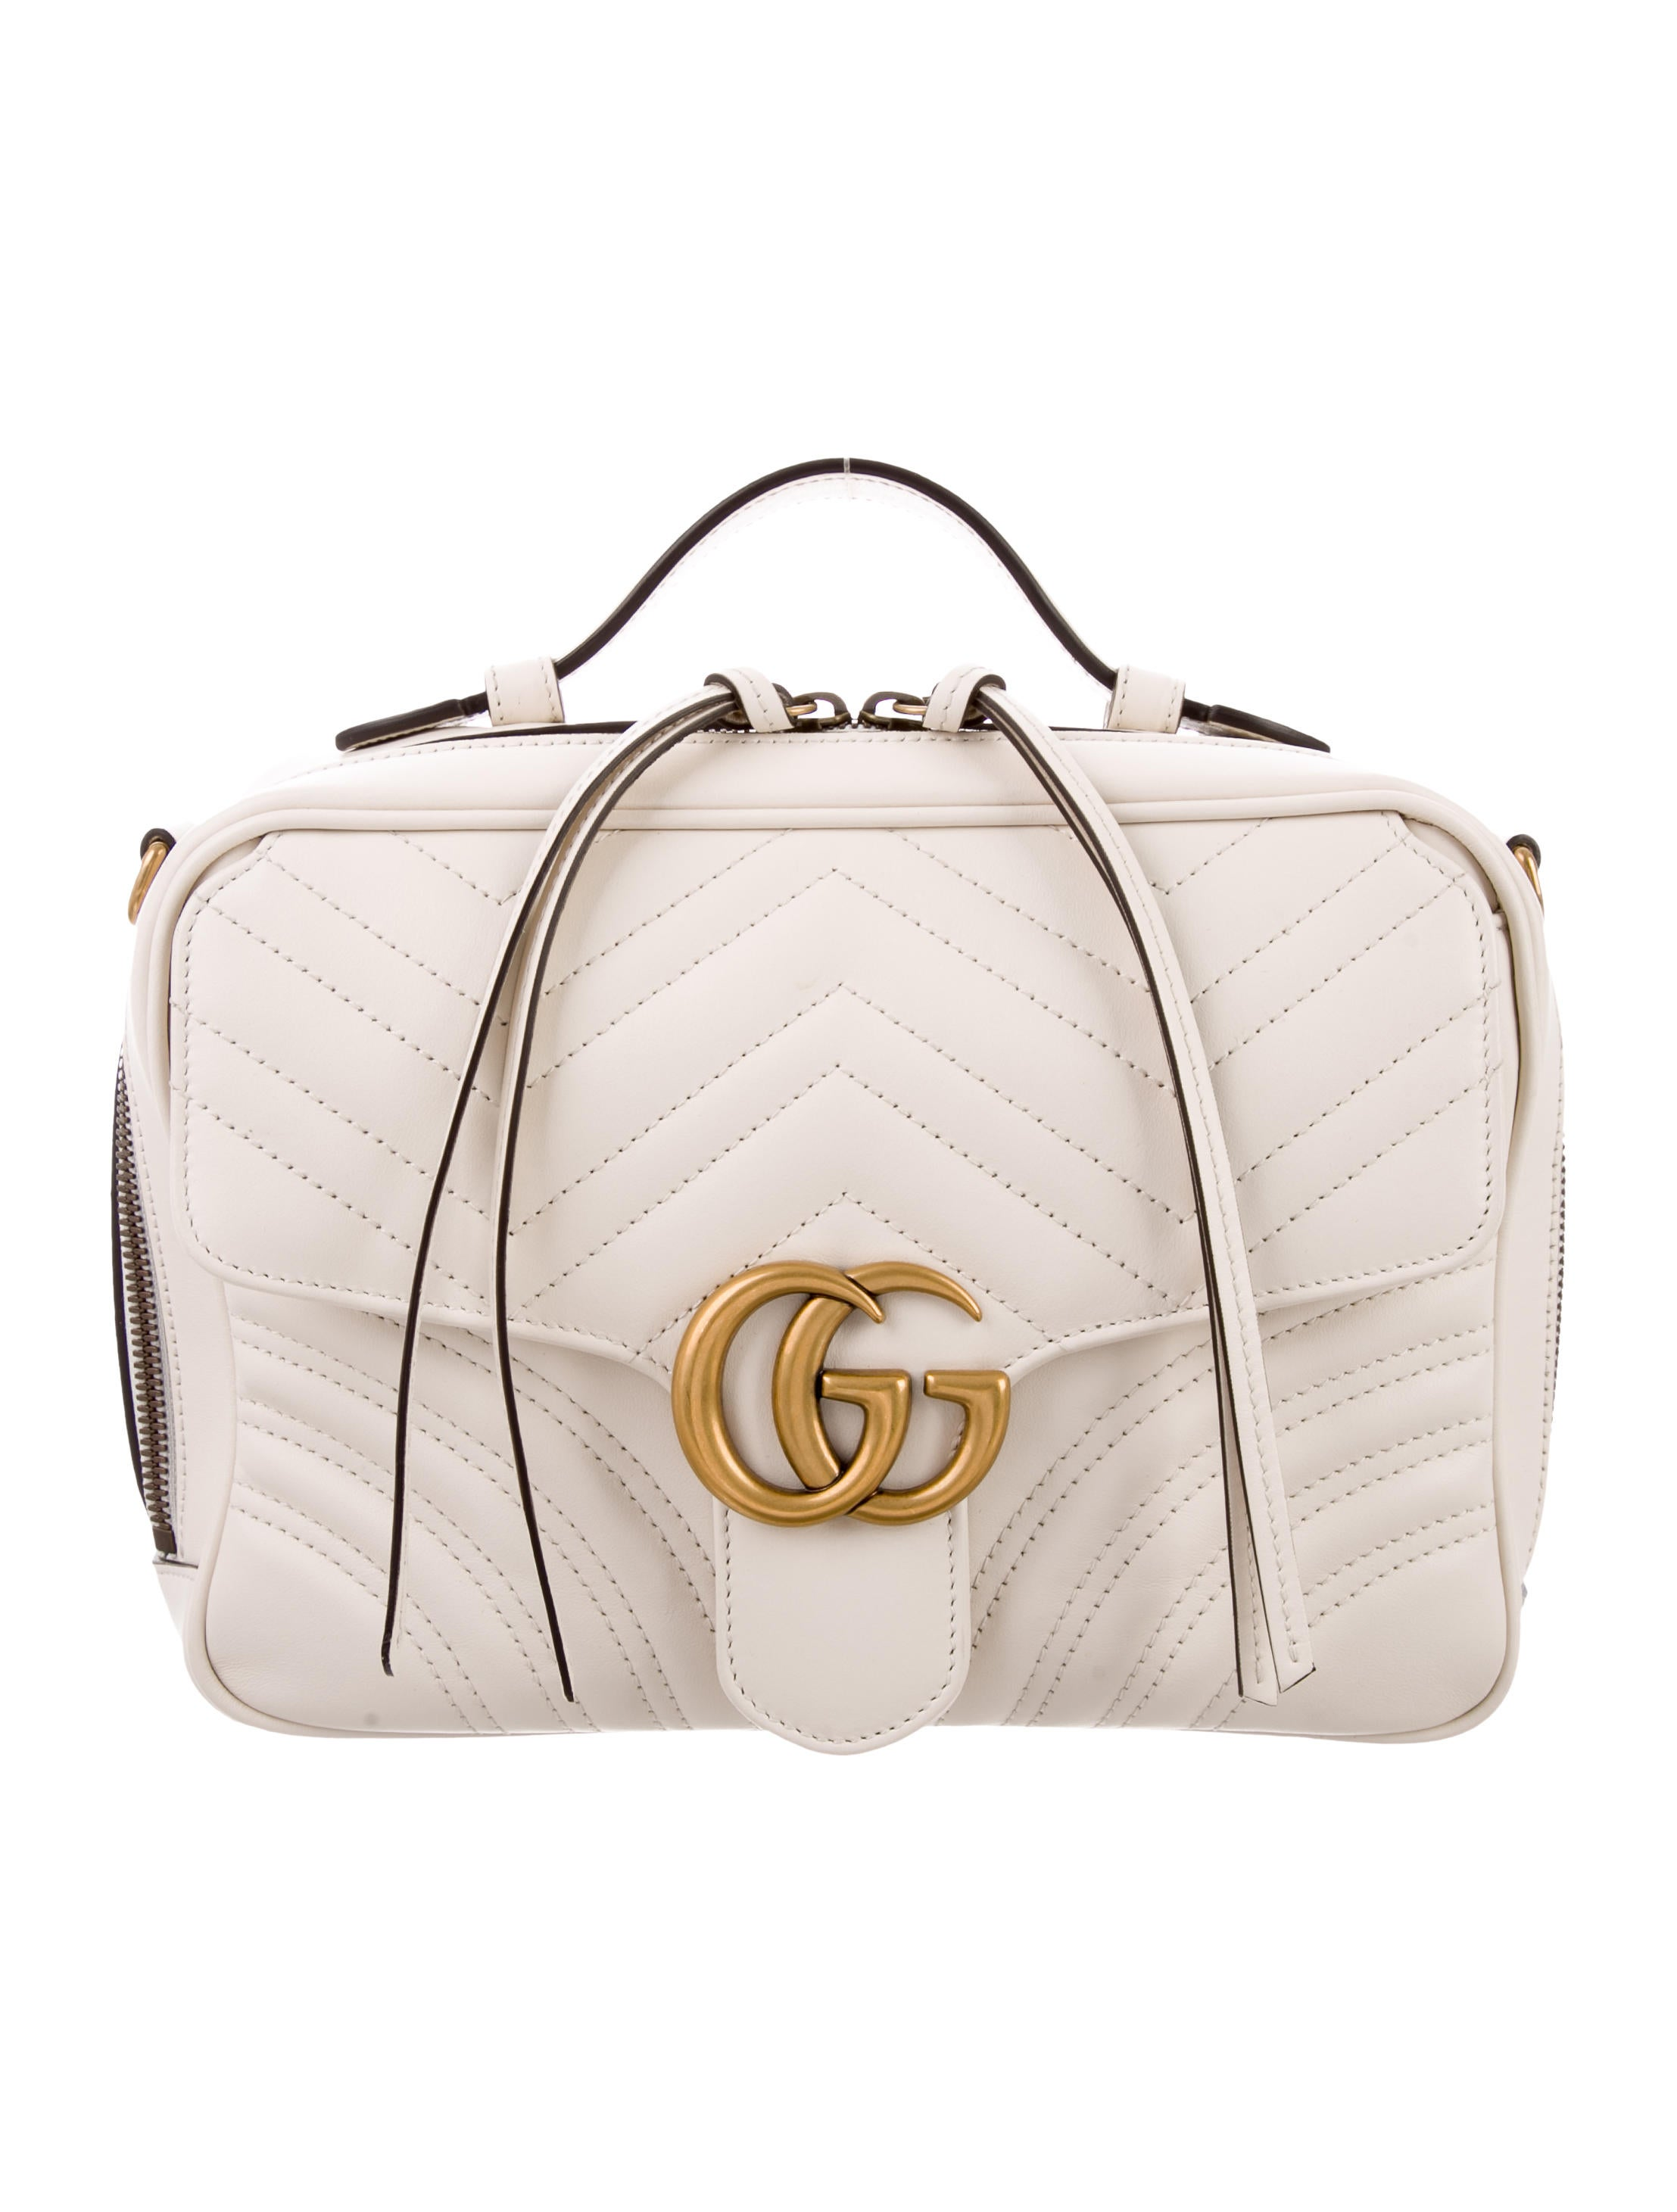 f800793a03de5b Gucci GG Marmont Small Camera Bag - Handbags - GUC220860 | The RealReal